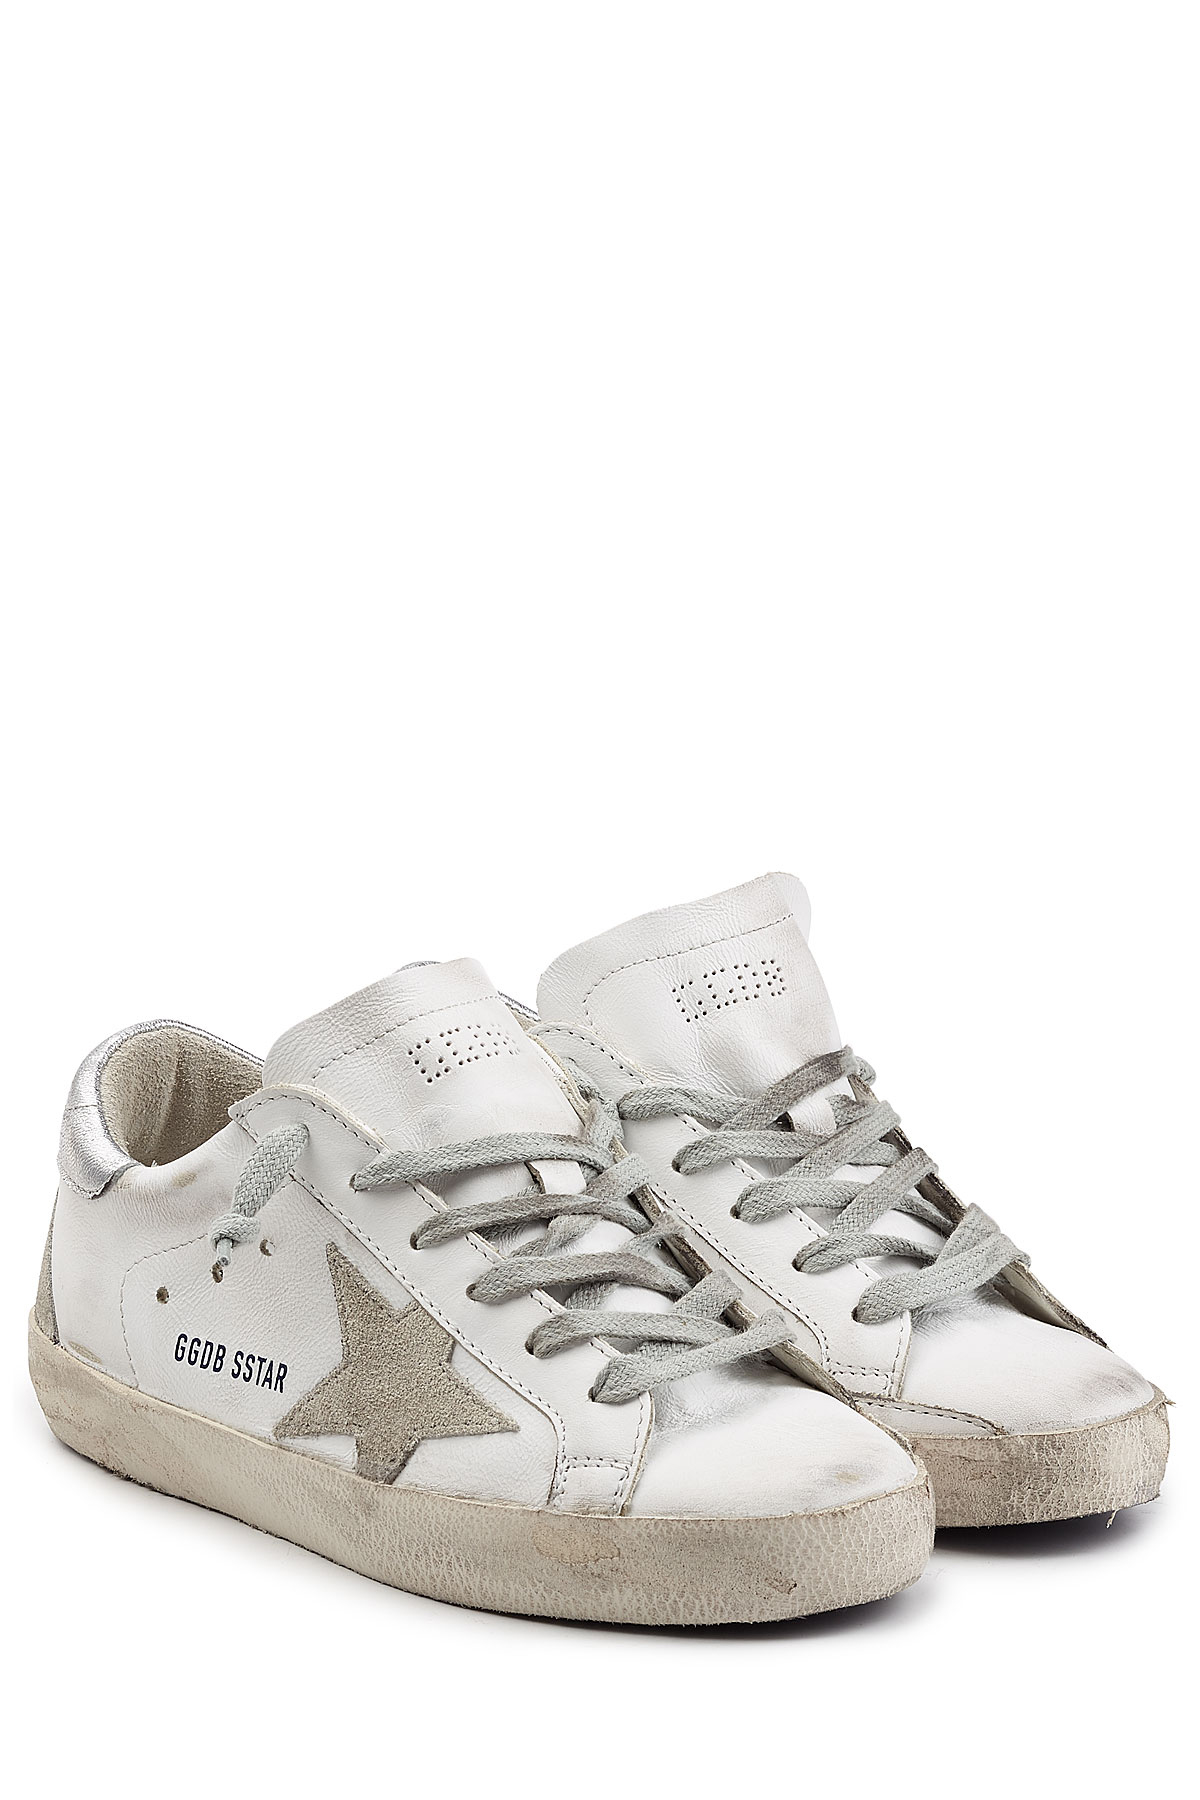 golden goose deluxe brand super star suede and leather sneakers white in white lyst. Black Bedroom Furniture Sets. Home Design Ideas